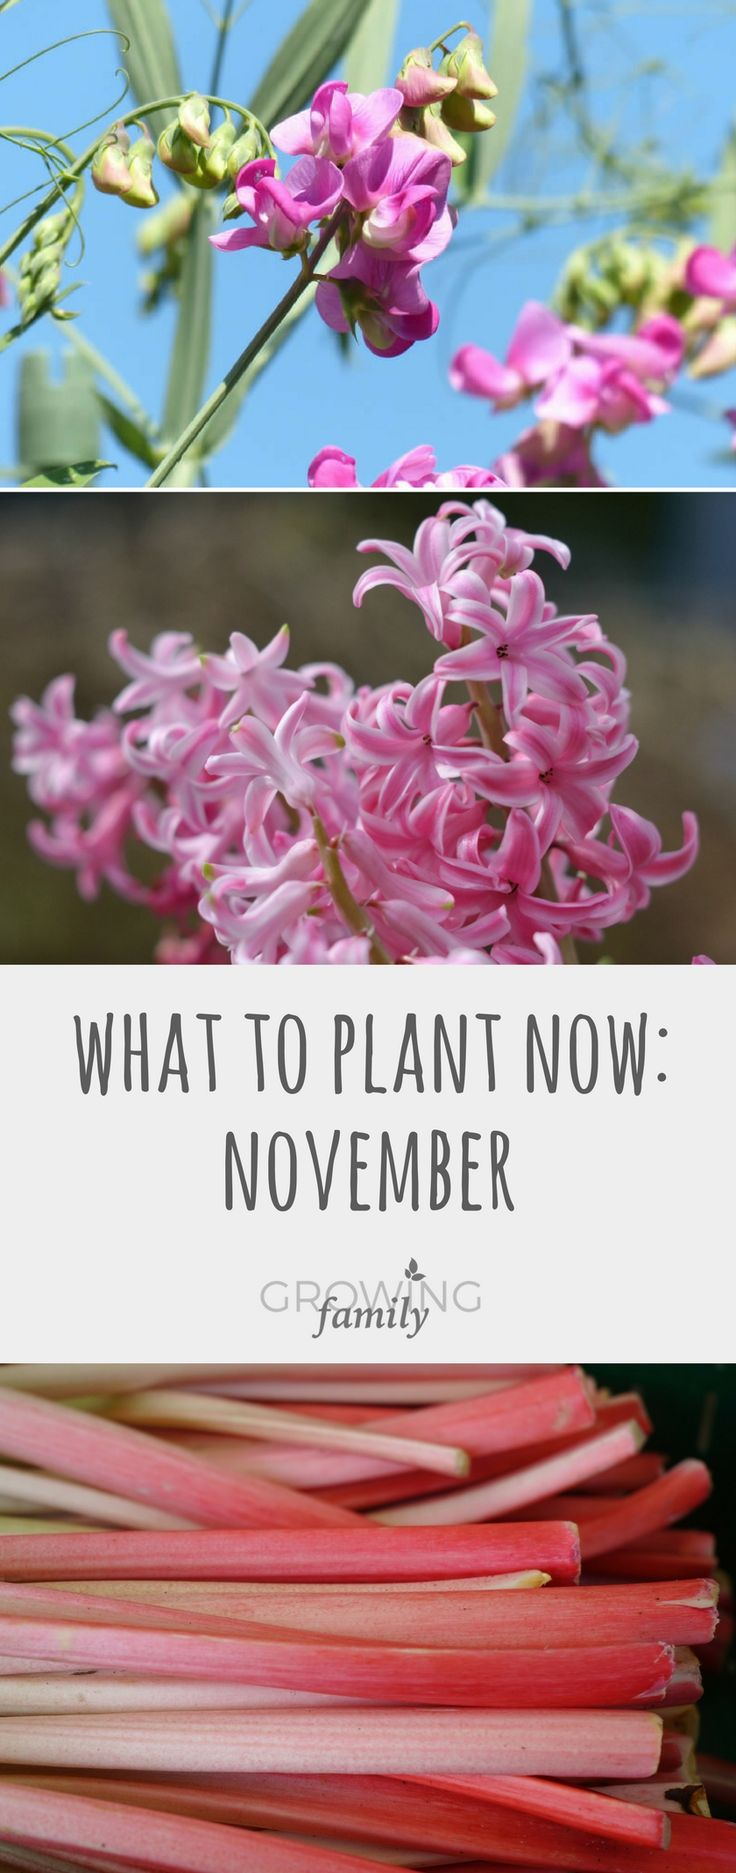 A guide to flowers and crops that you can plant in November for harvesting and blooming over the coming months. Here's what to plant now.